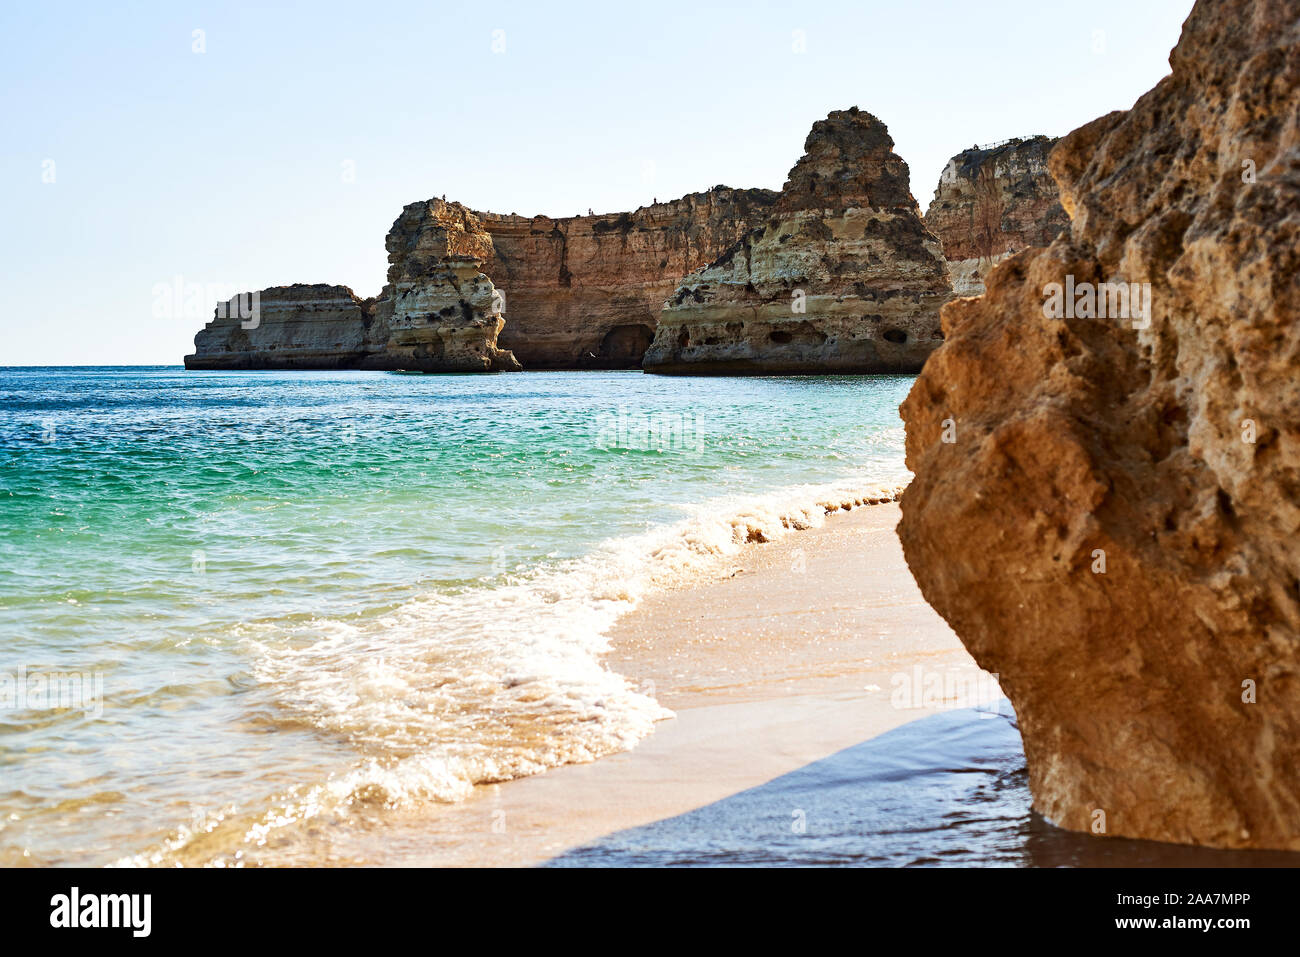 Rocks and sandy beach in Portugal, Atlantic coast. Stock Photo